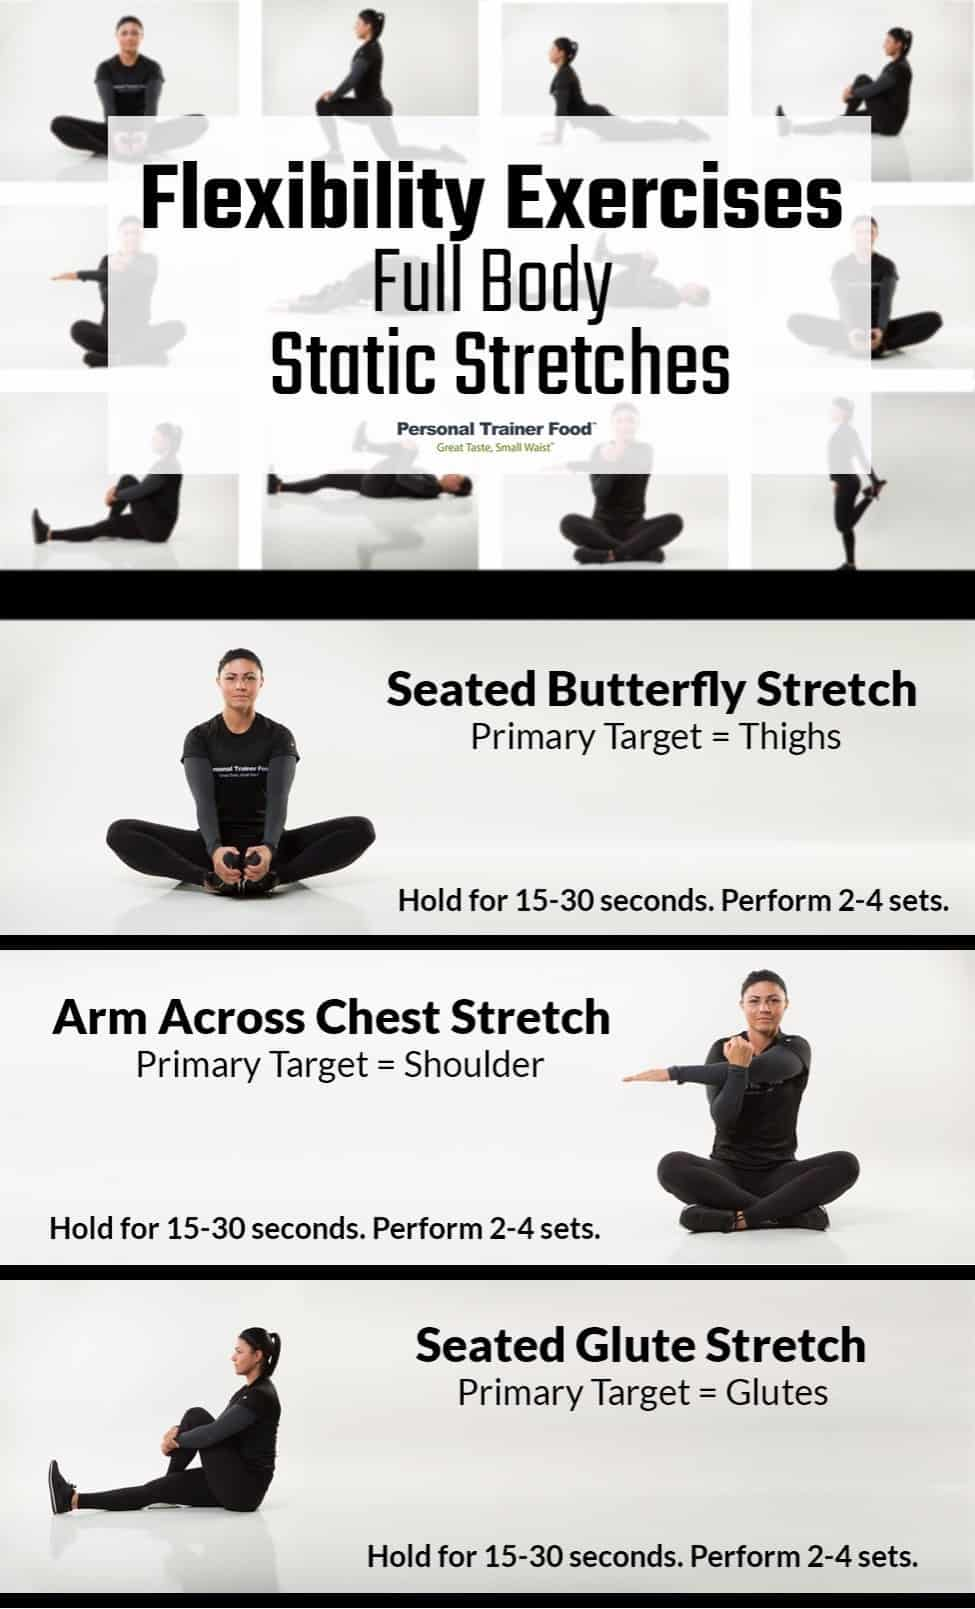 Full Body Static Stretching - stretching routines